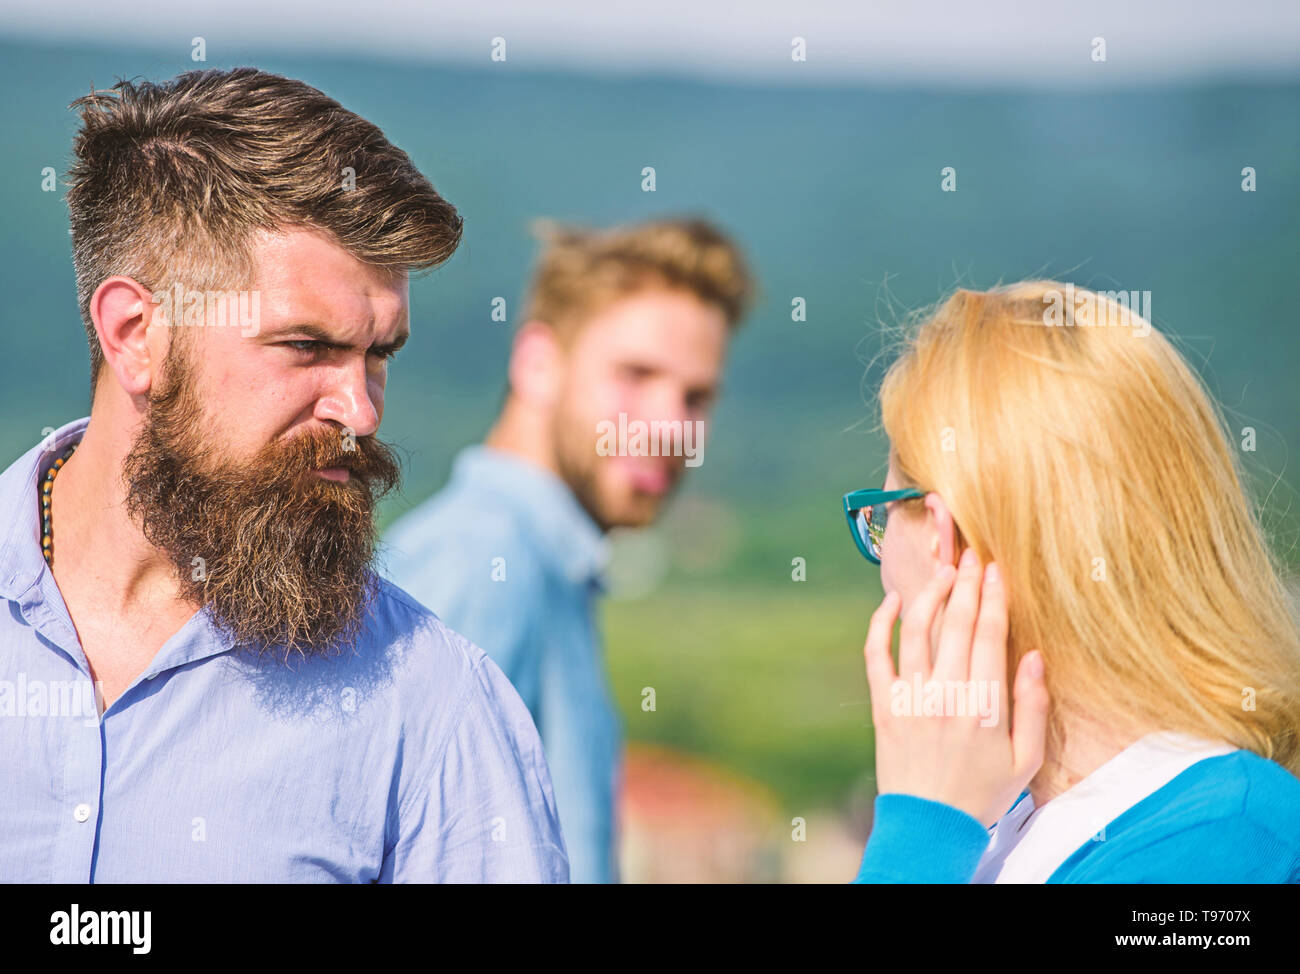 Husband strictly watching his wife looking at another guy while walk. Jealous concept. Passerby smiling to lady. Man with beard jealous aggressive because girlfriend interested in handsome passerby. - Stock Image